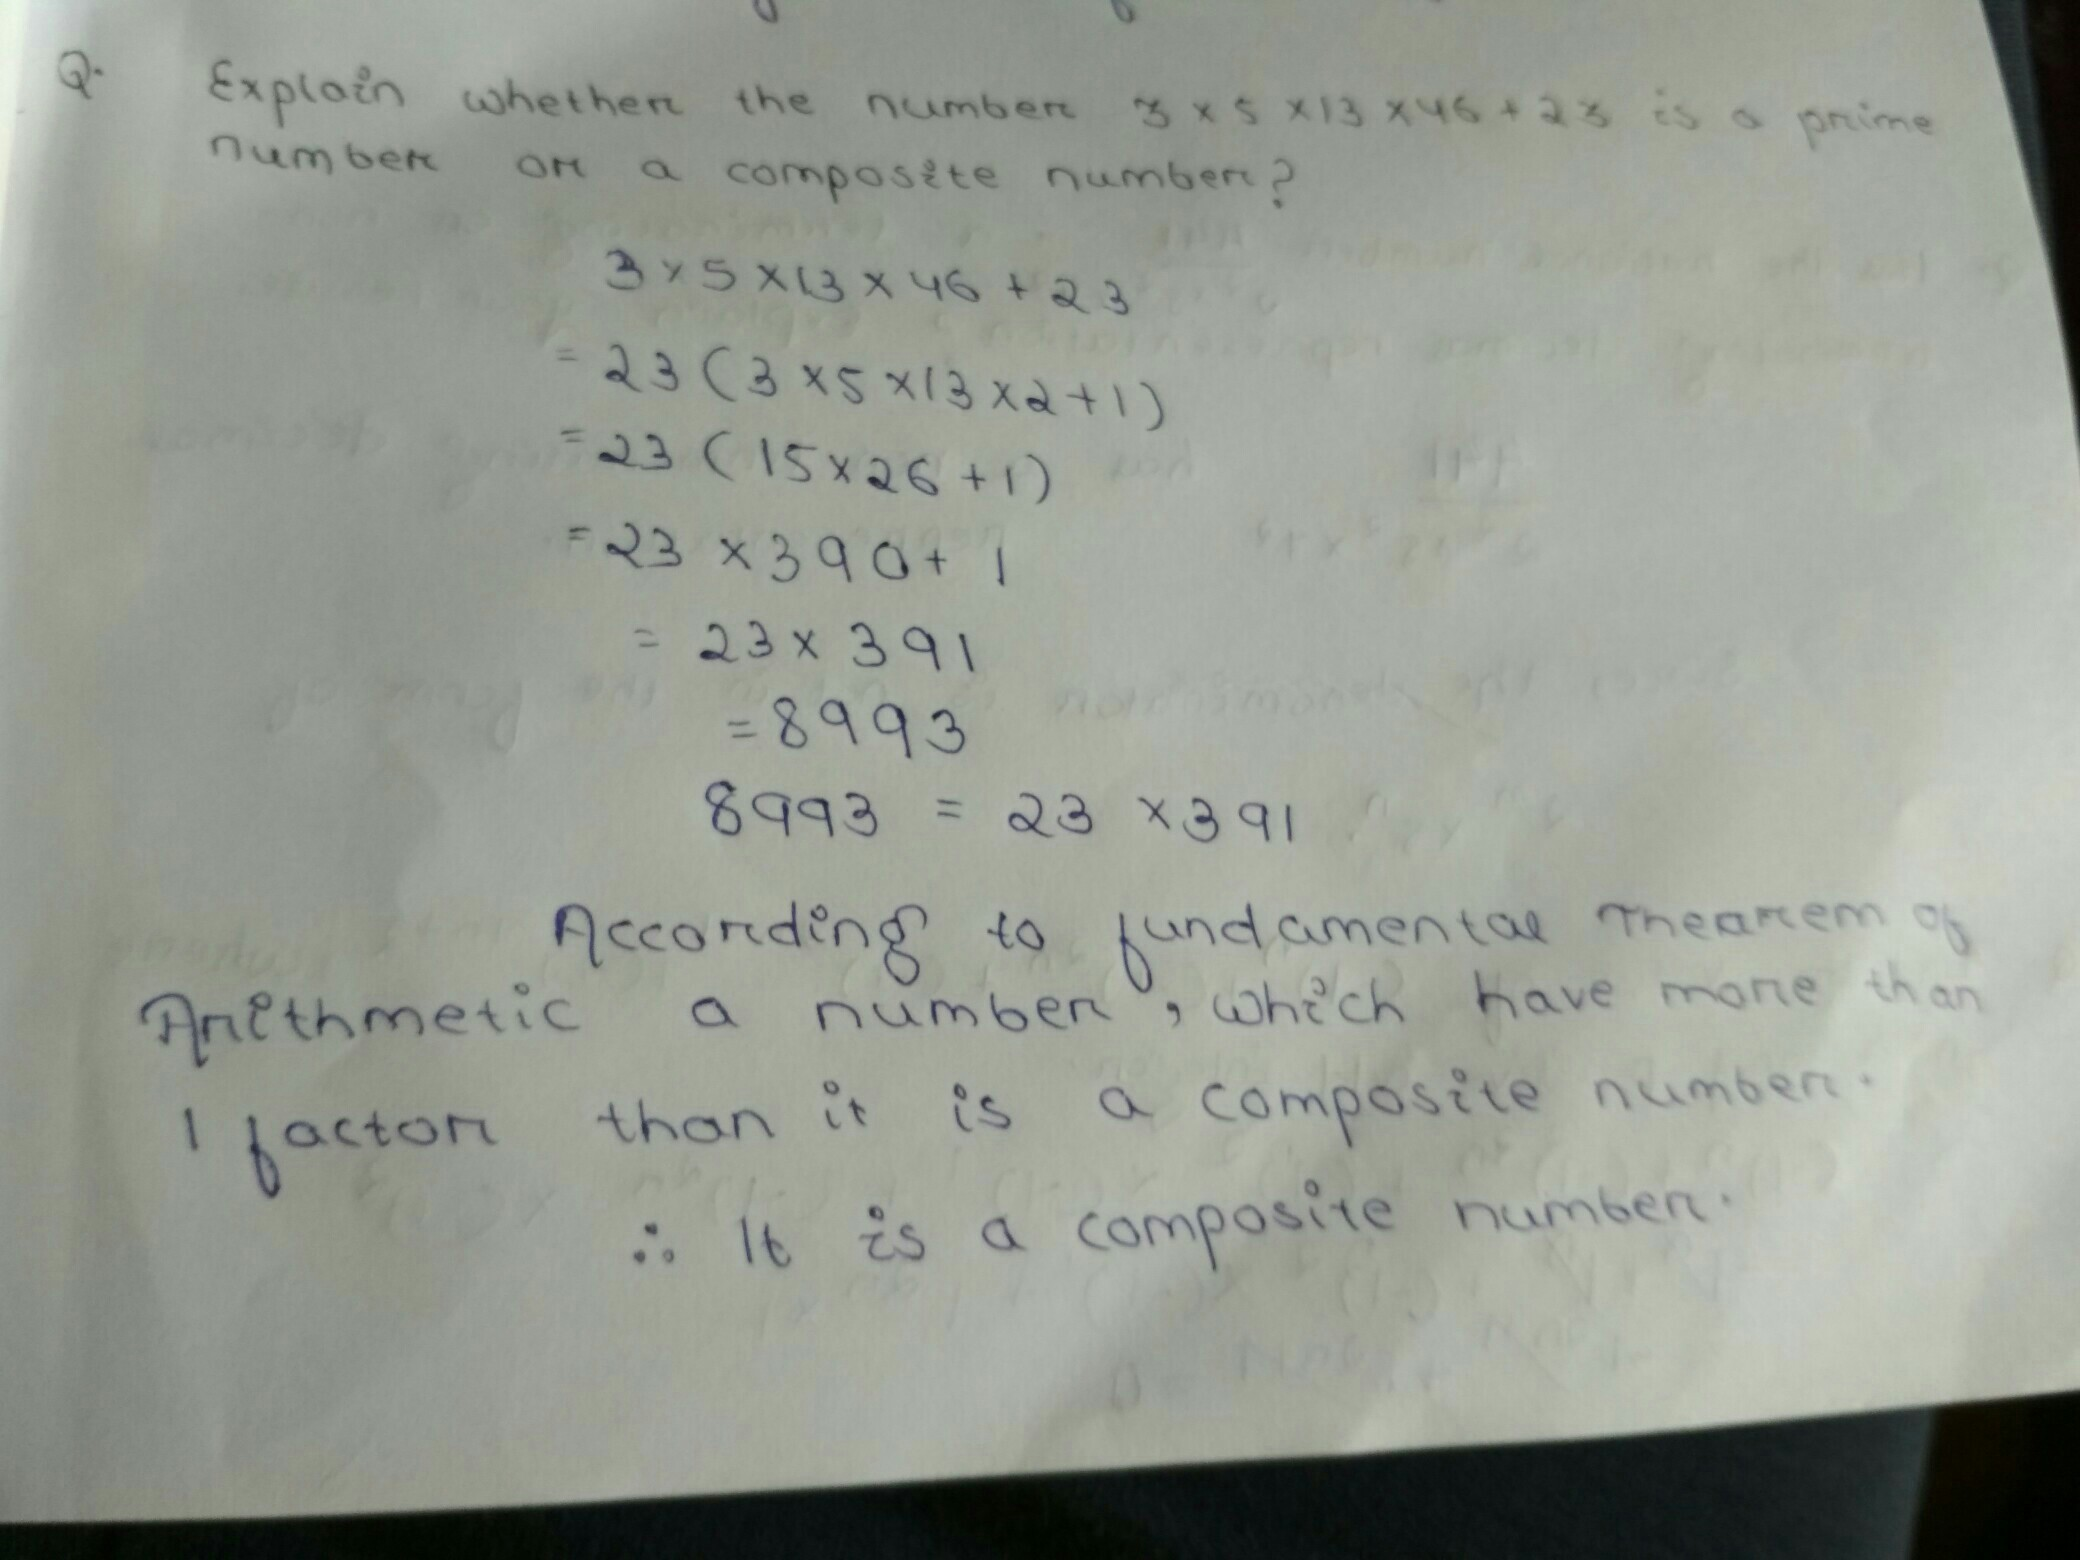 explain whether the number 3×5×13×46+23 is a prime number or